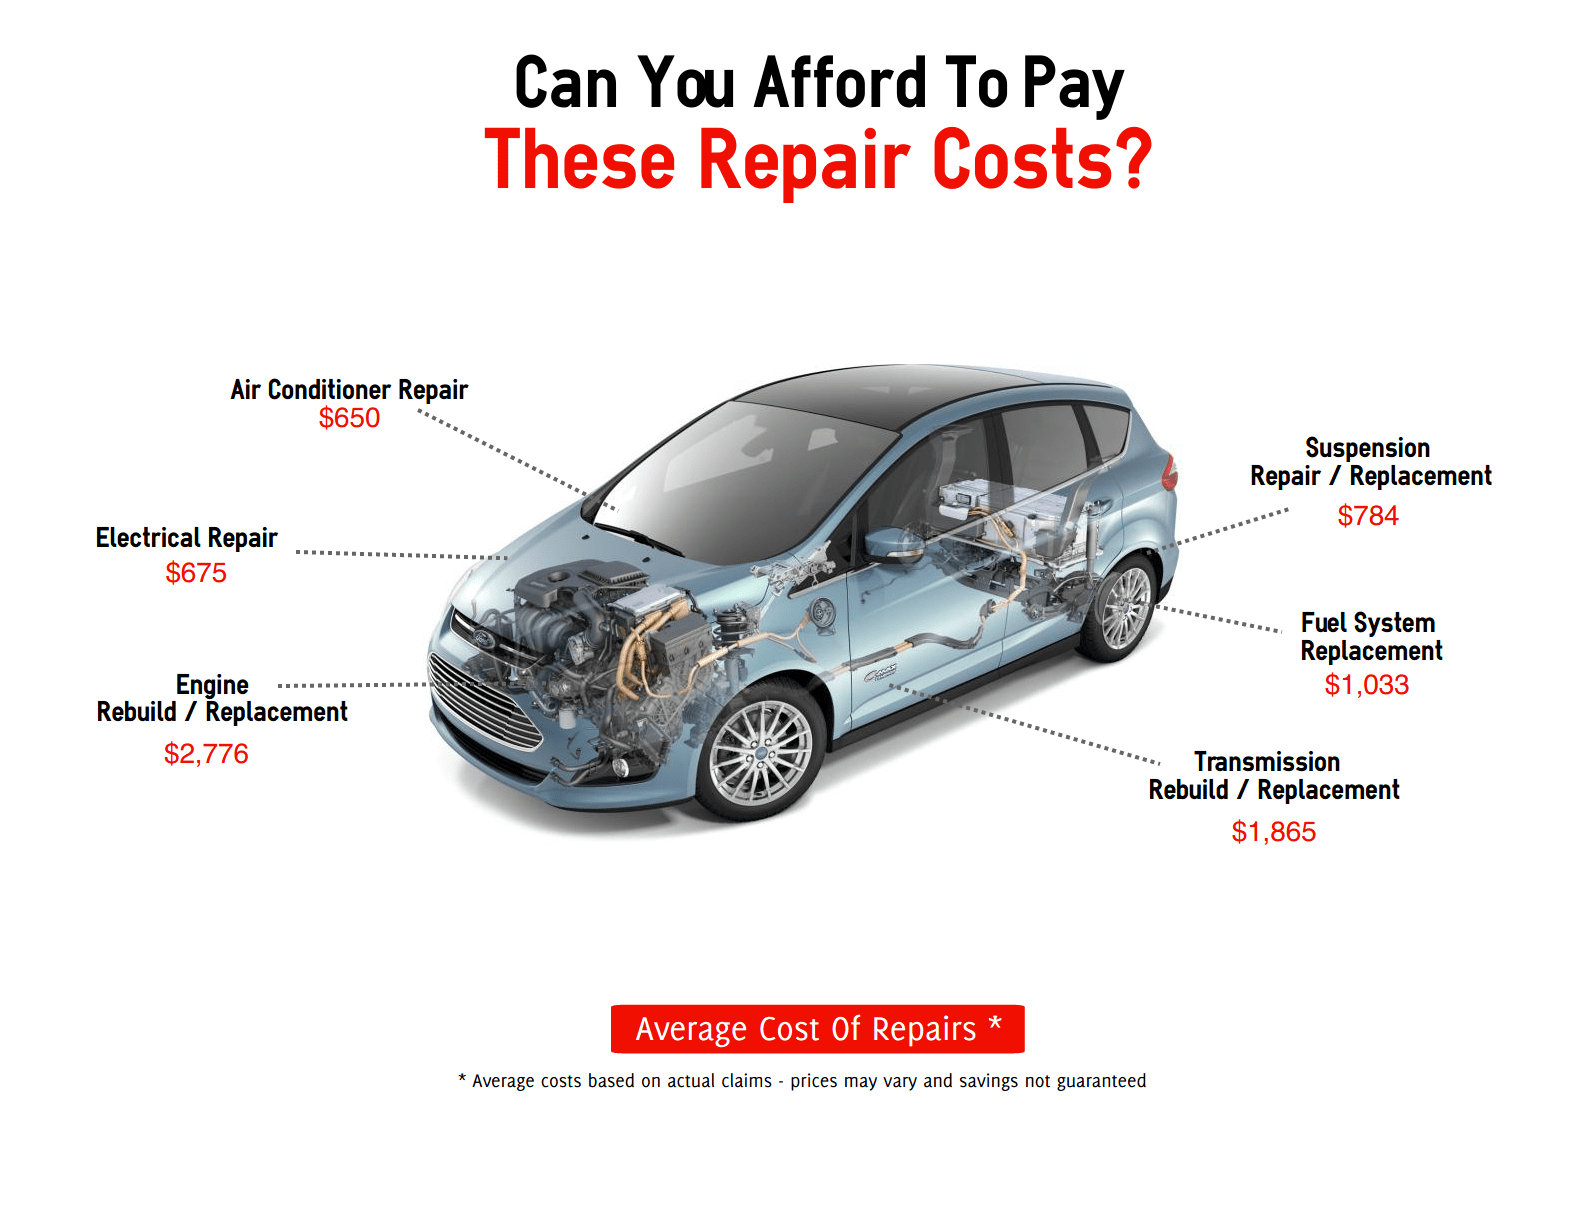 Cost to Repair Your Car